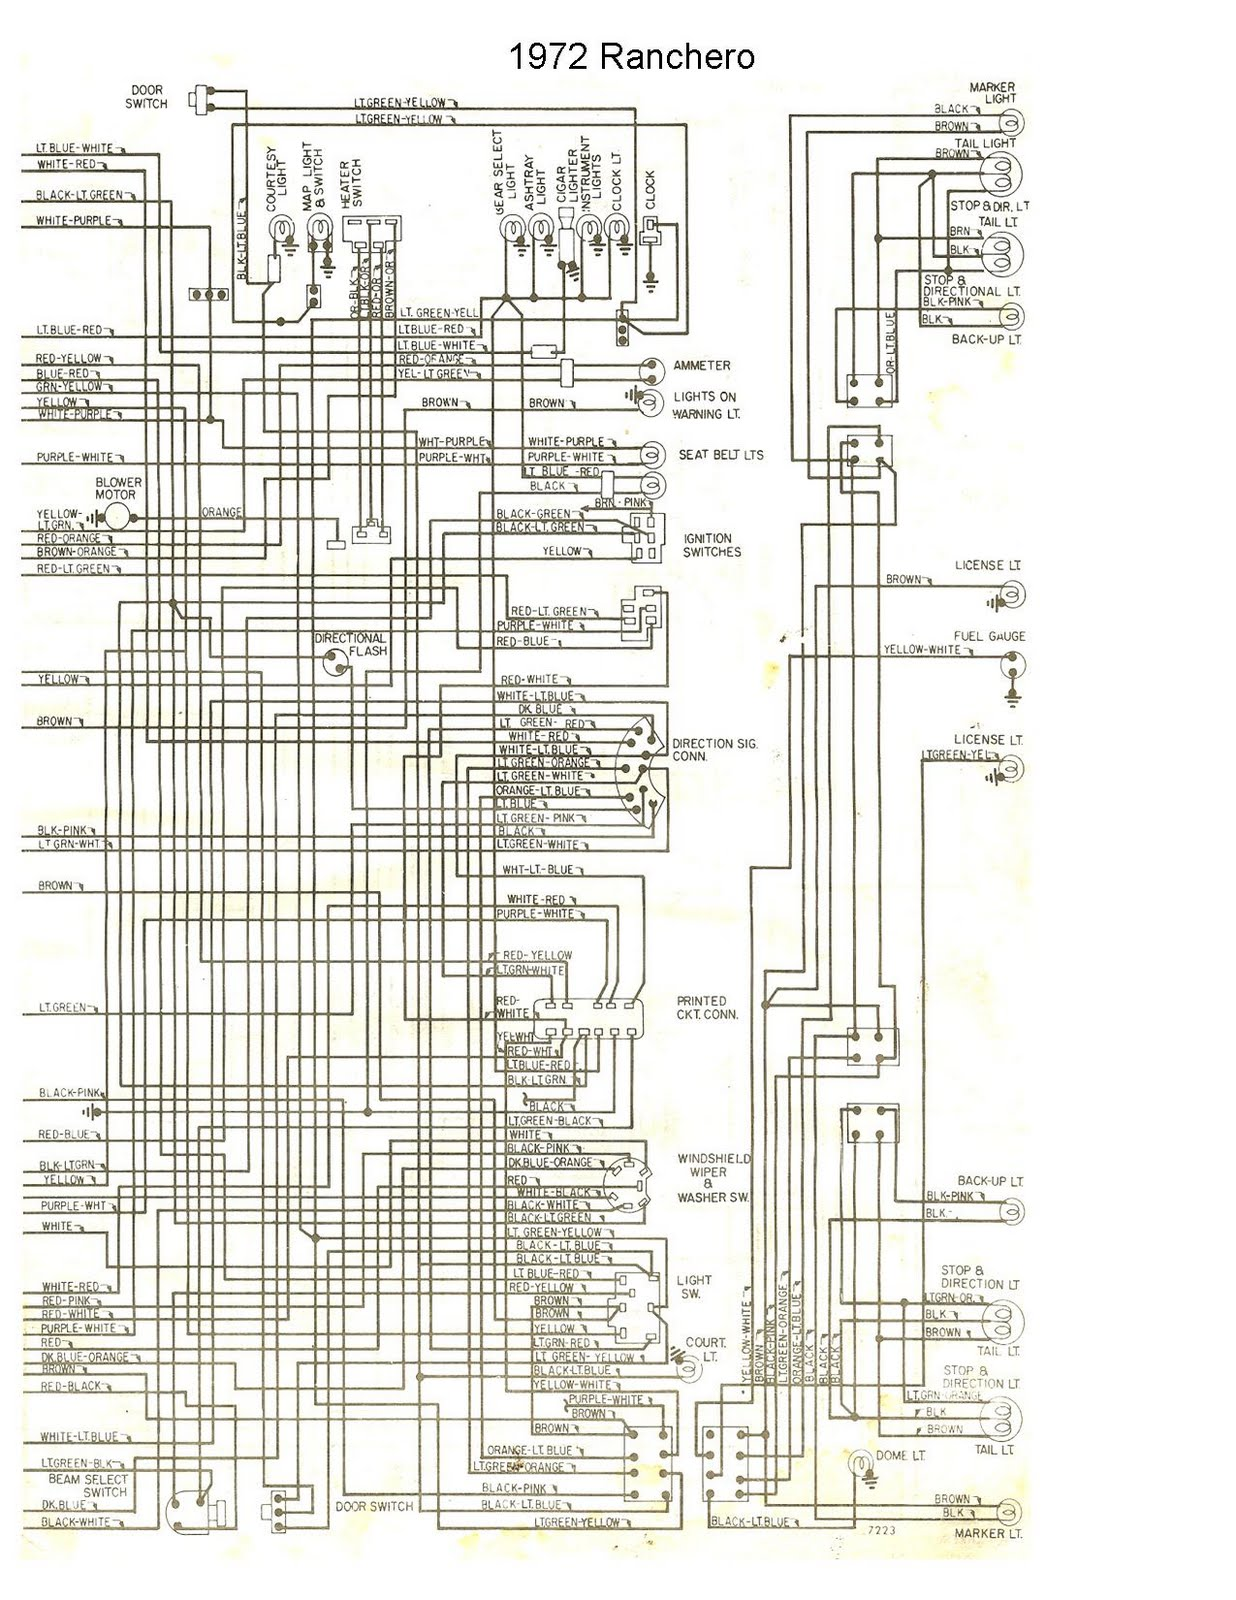 wiring schematic diagram ford ranchero 1972 free auto wiring diagram 1972 ford ranchero wiring diagram F100 Wiring Diagram at reclaimingppi.co